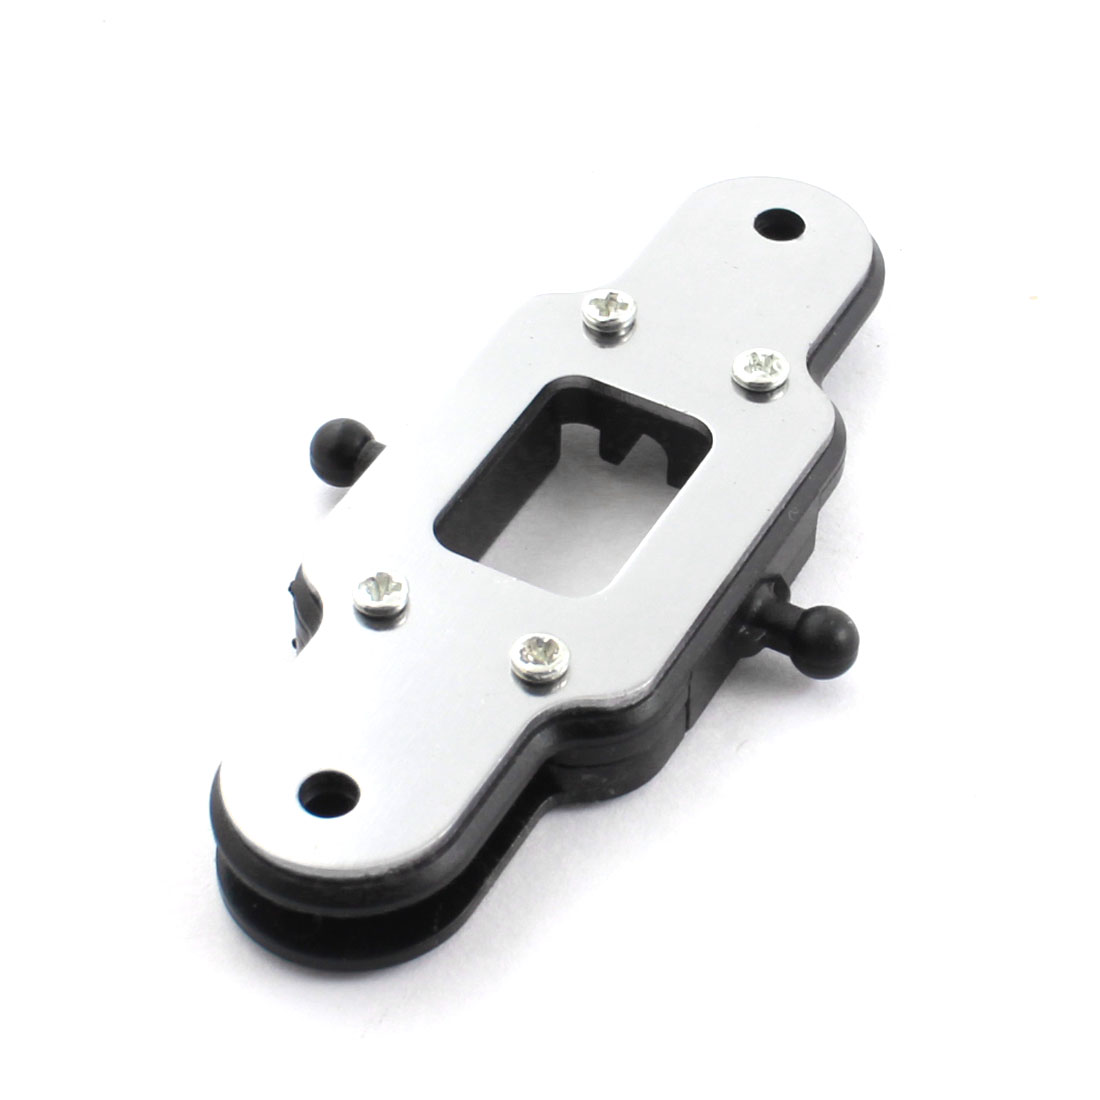 Spare Part Black Plastic Lower Rotor Vane Clamp Clip 6mm for FQ777-603 RC Helicopter